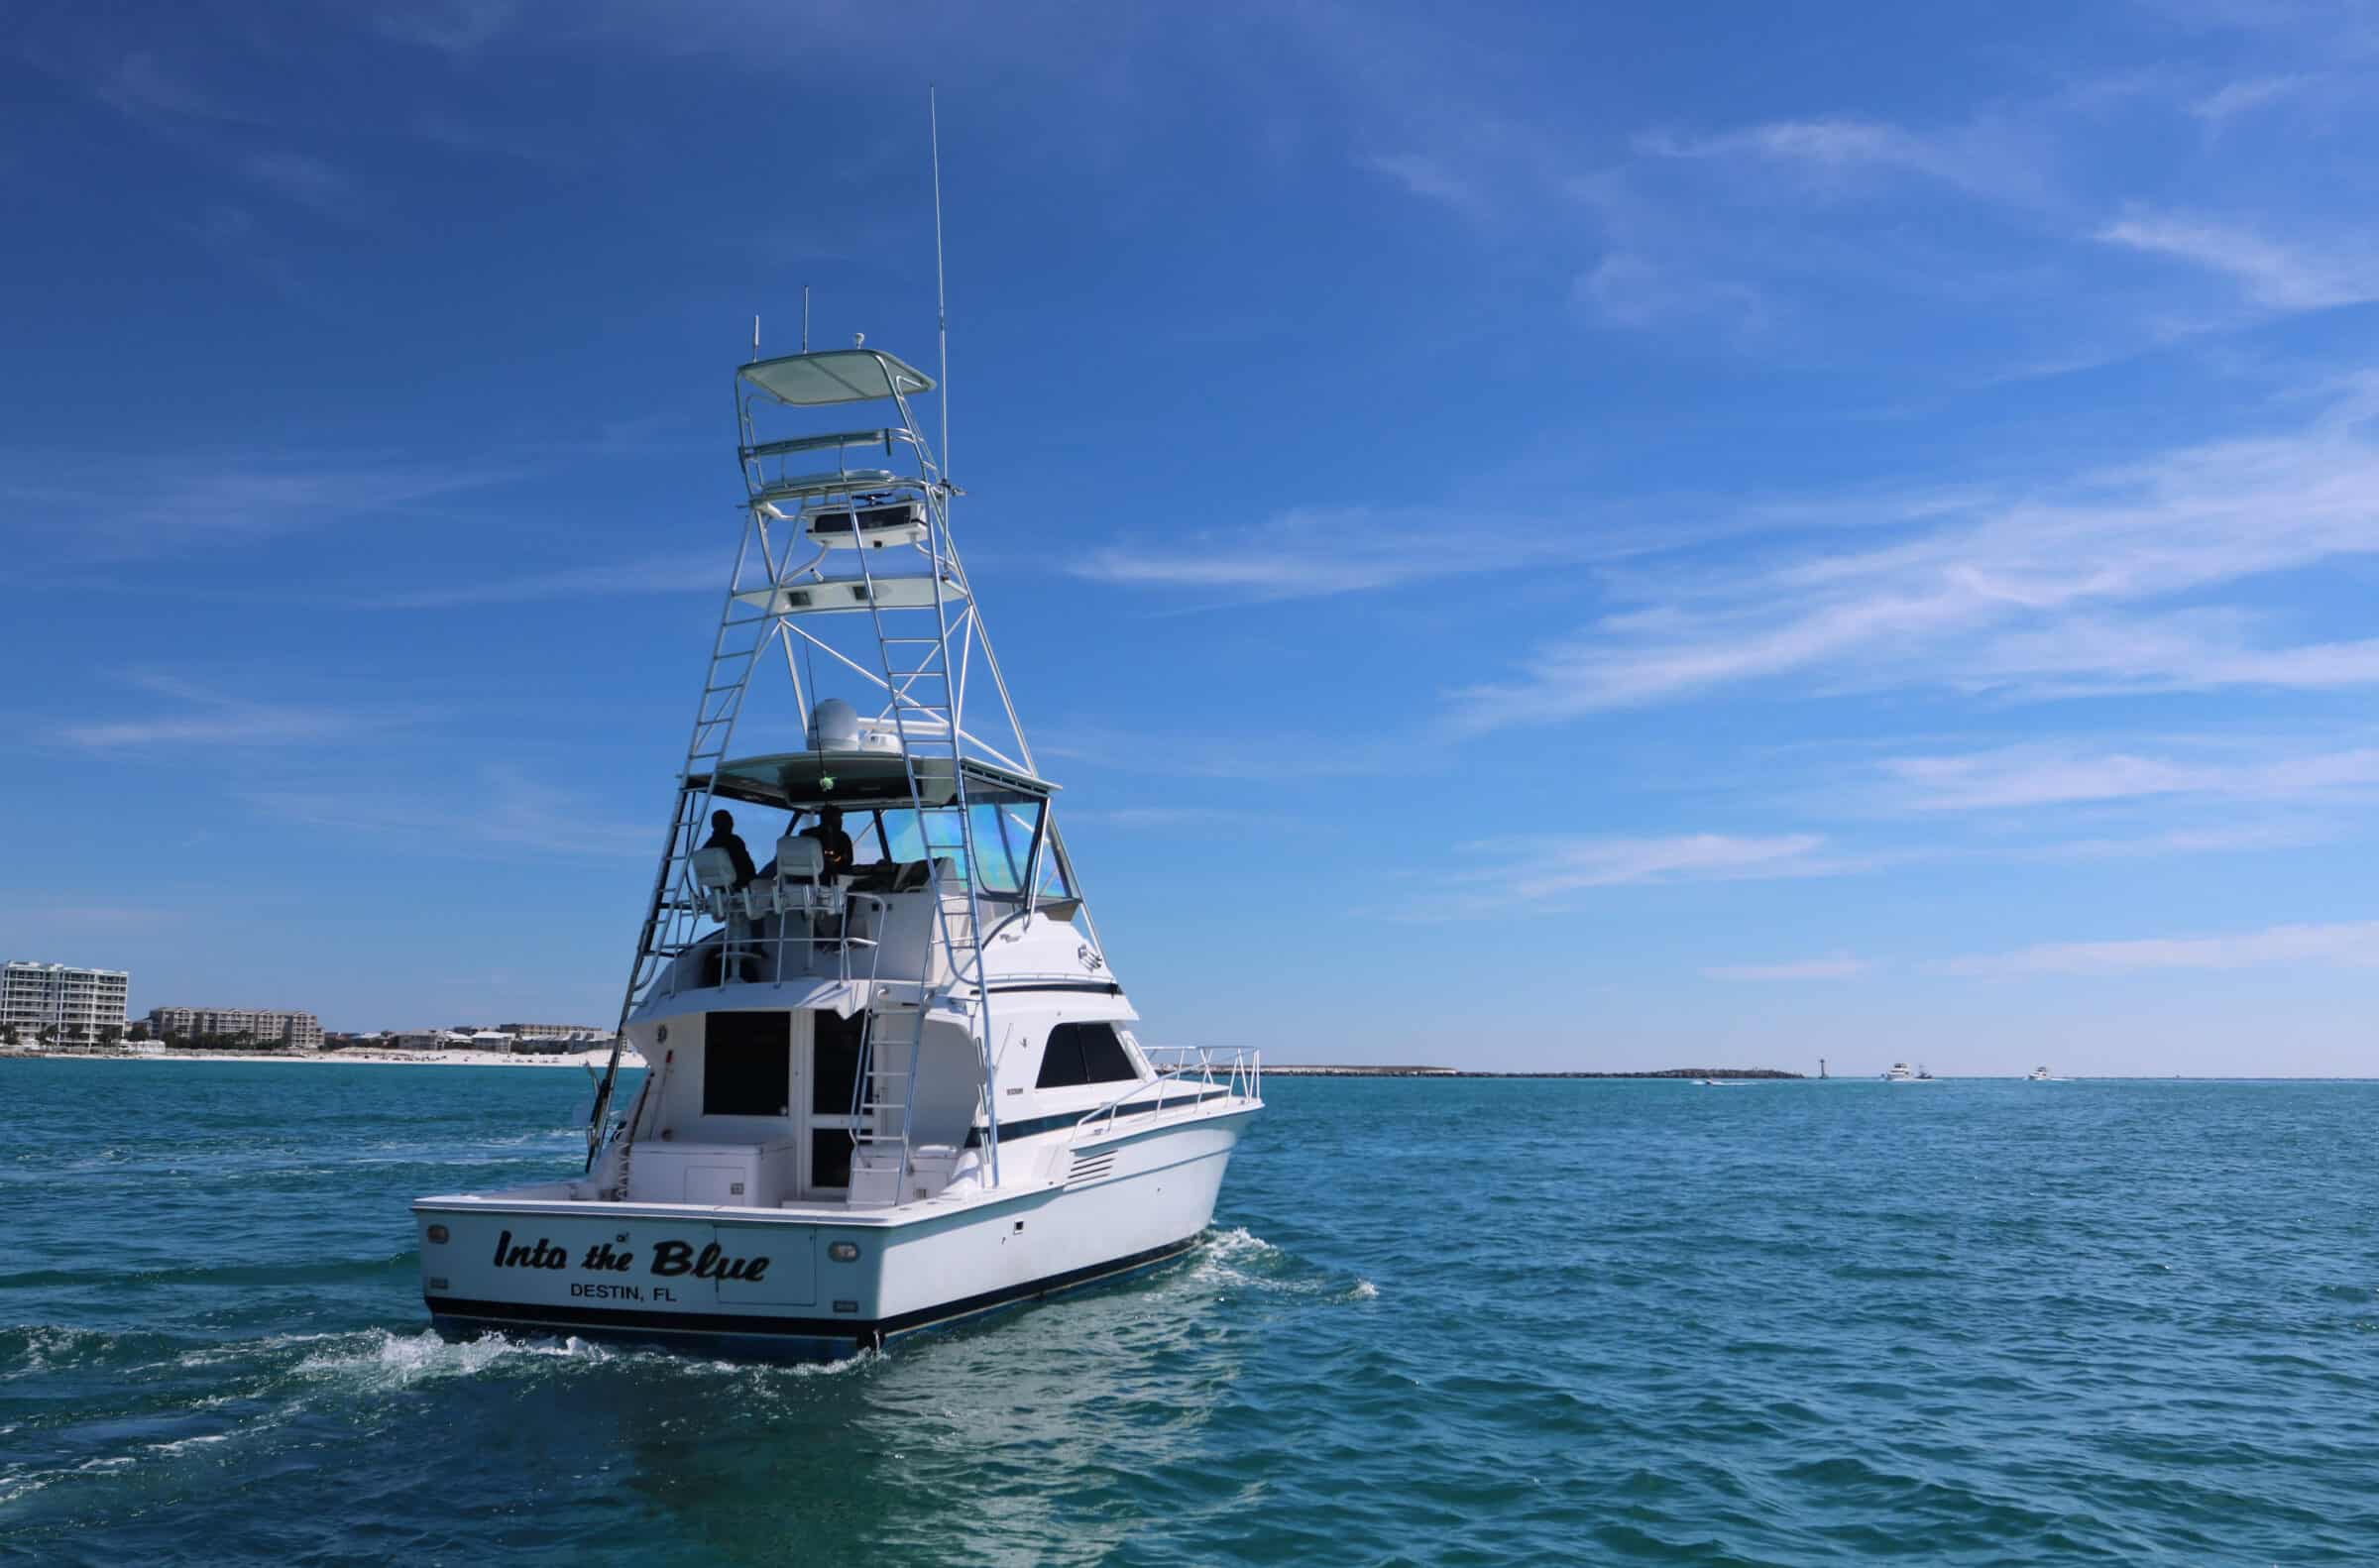 Destin Fishing Charters - Overnight Fishing Charter On The Gulf Of Mexico